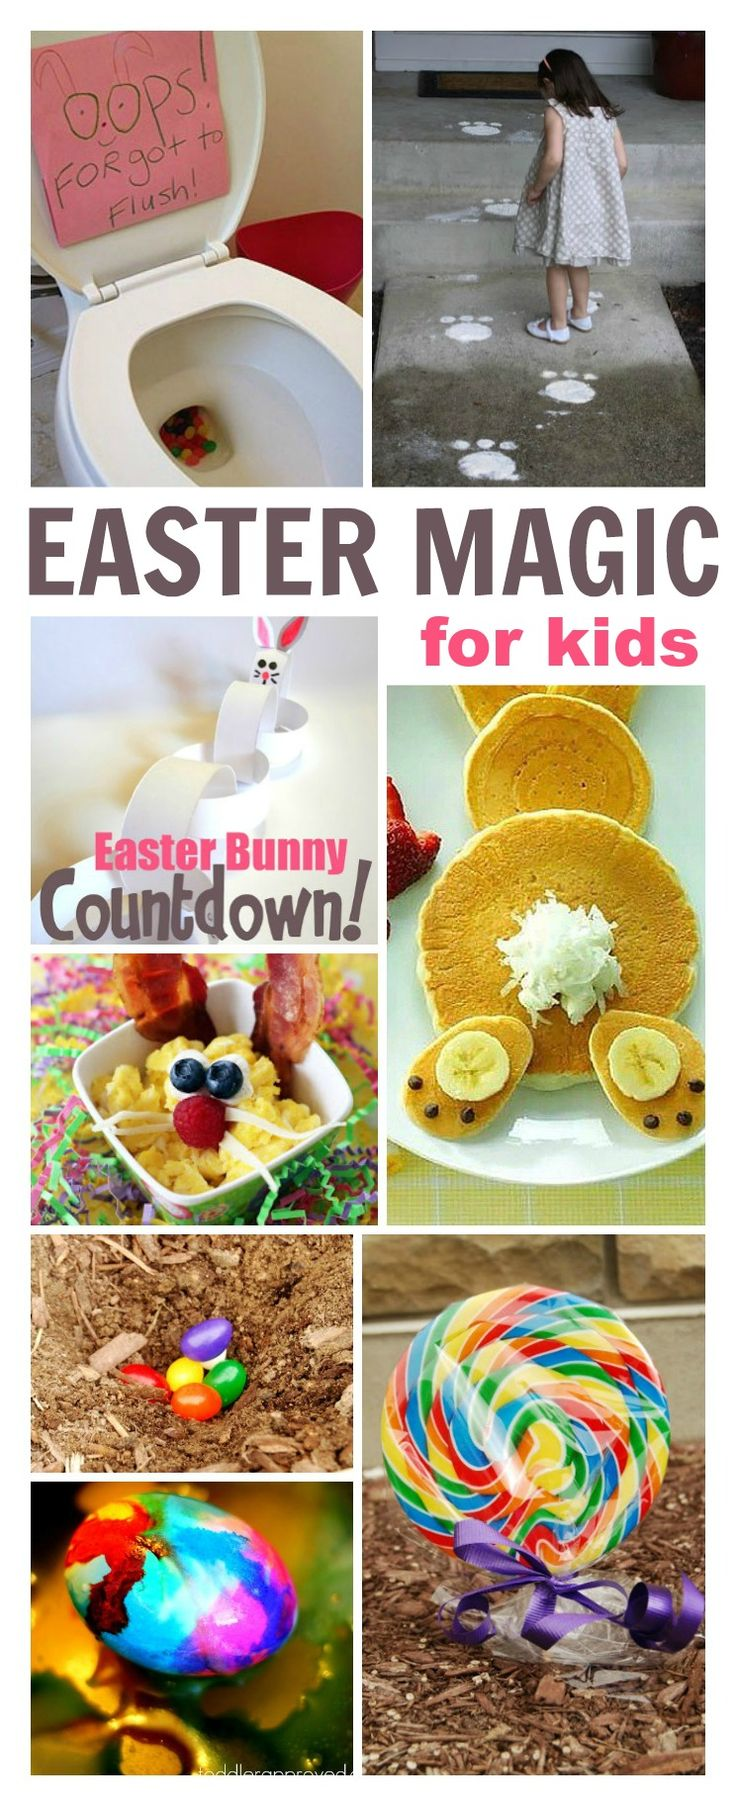 Make Easter magical for kids with these simple & FUN ideas- these are too cute! Can I be a kid again please?